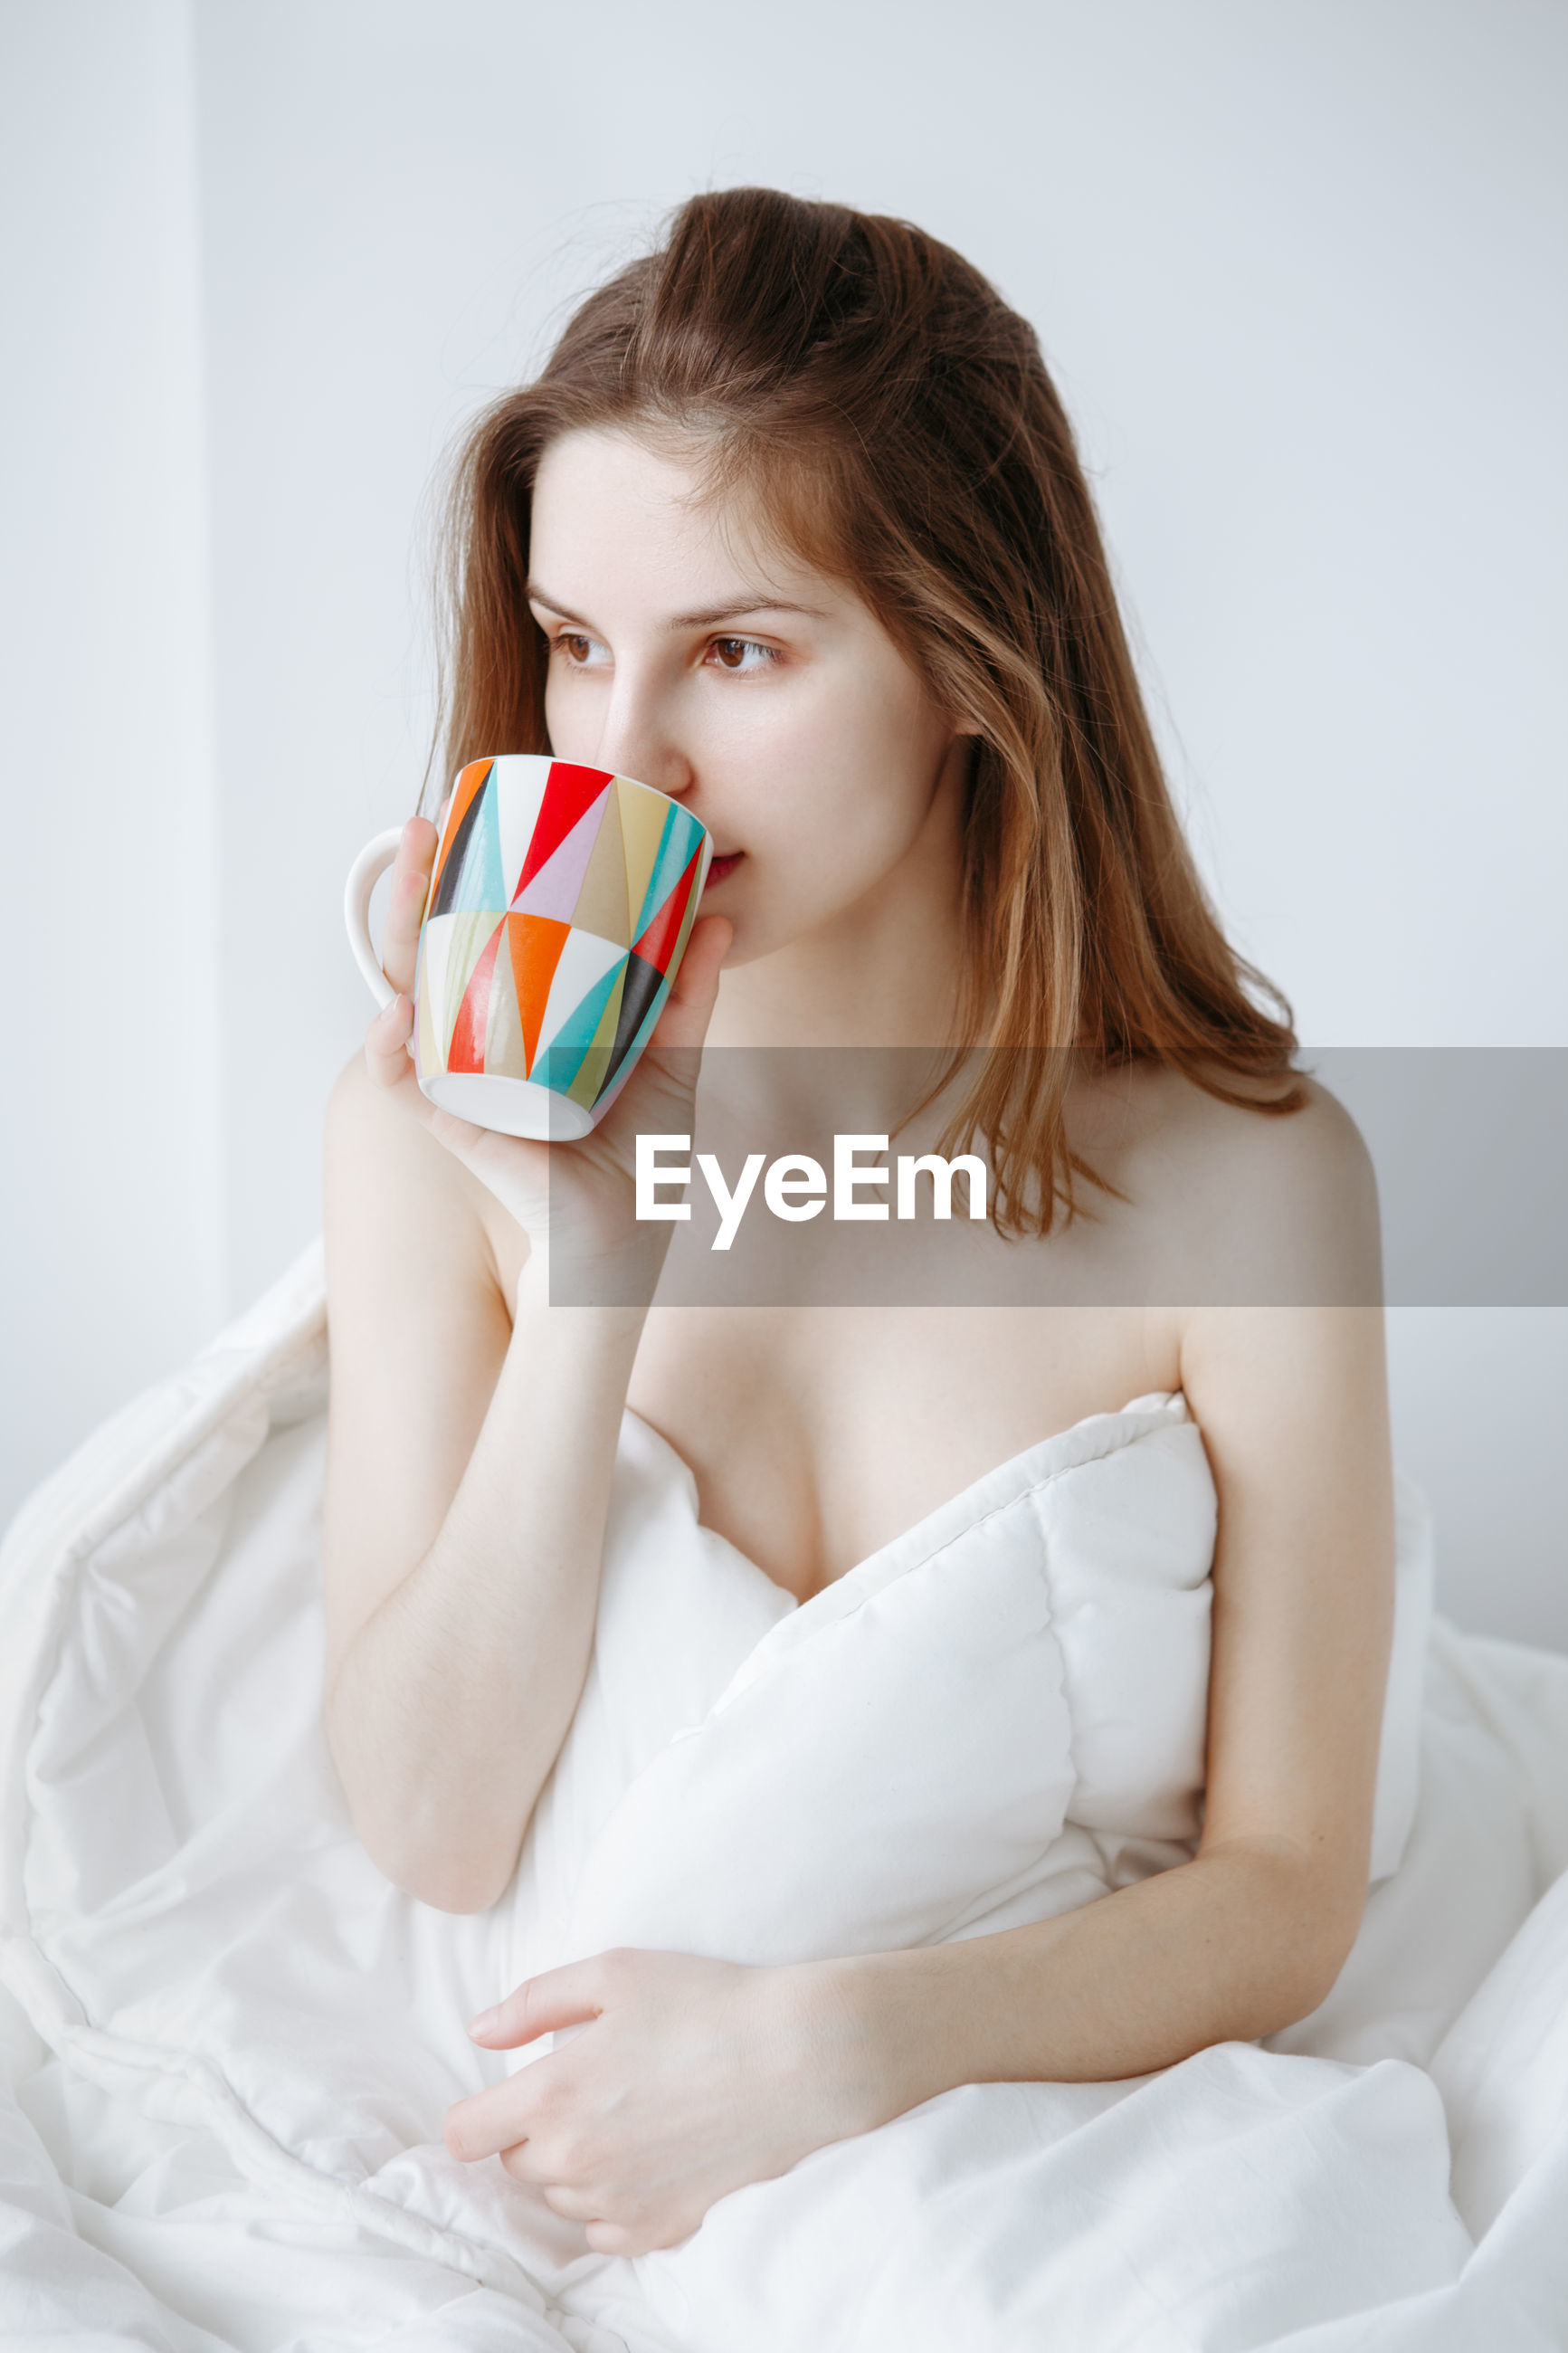 Young woman having drink while sitting on bed